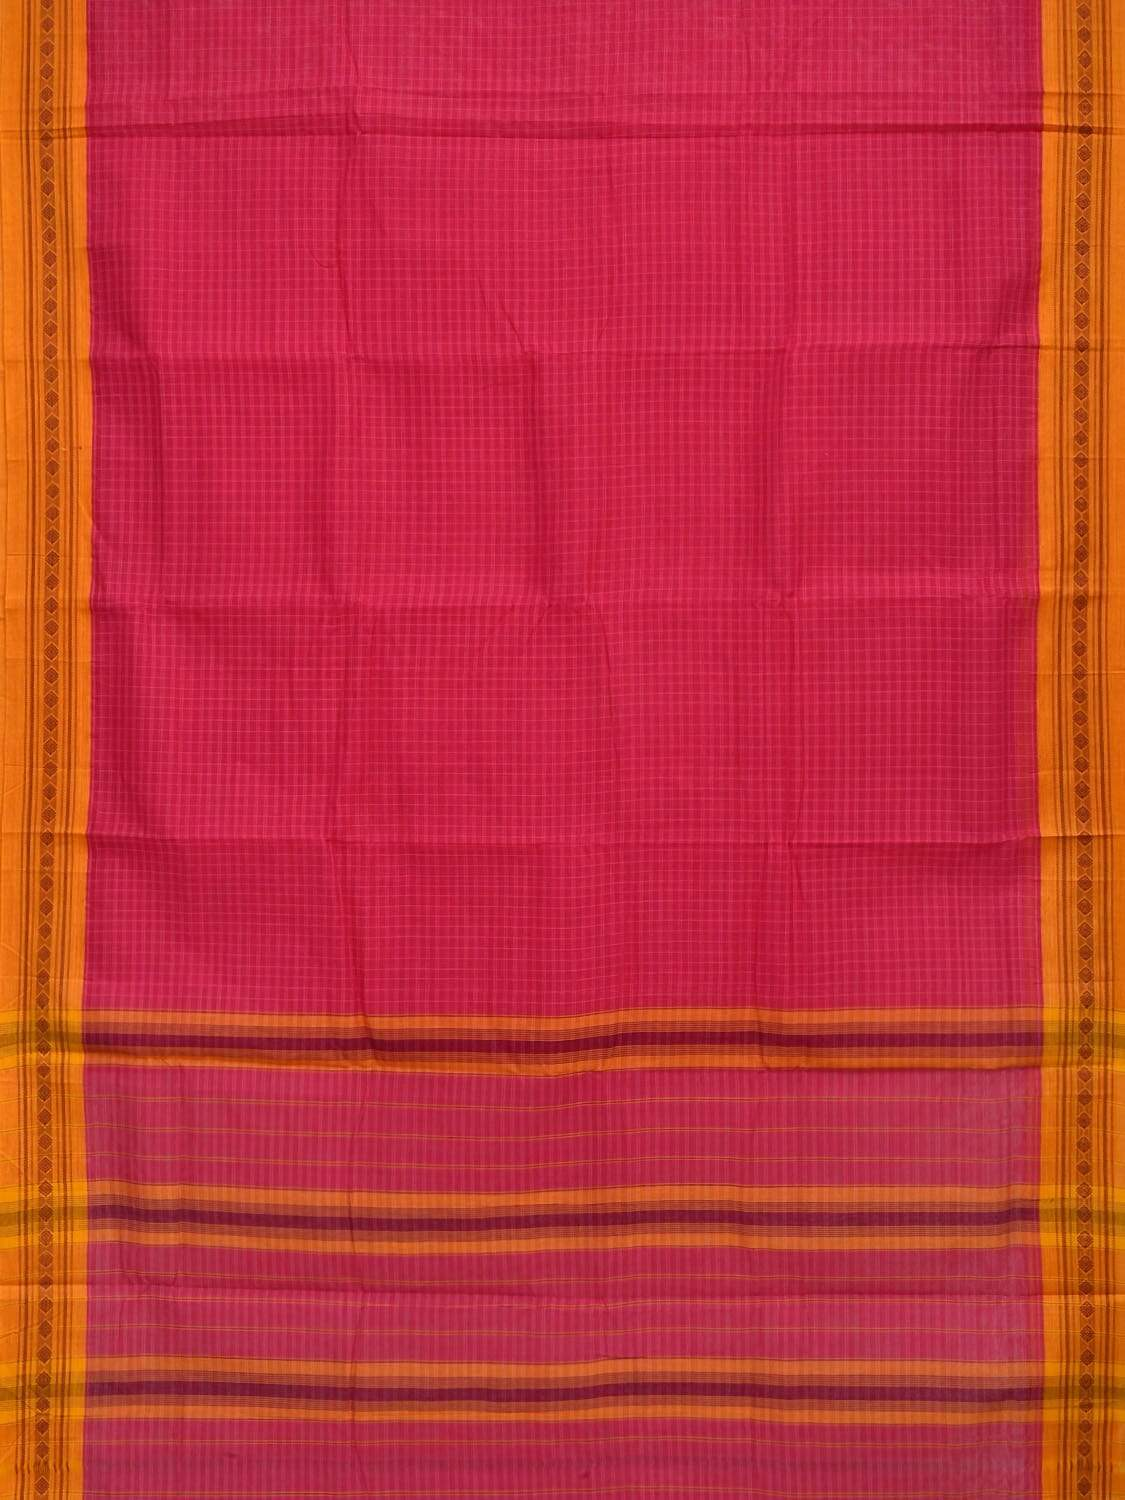 Pink Narayanpet Cotton Handloom Saree with Checks Design No Blouse np0254